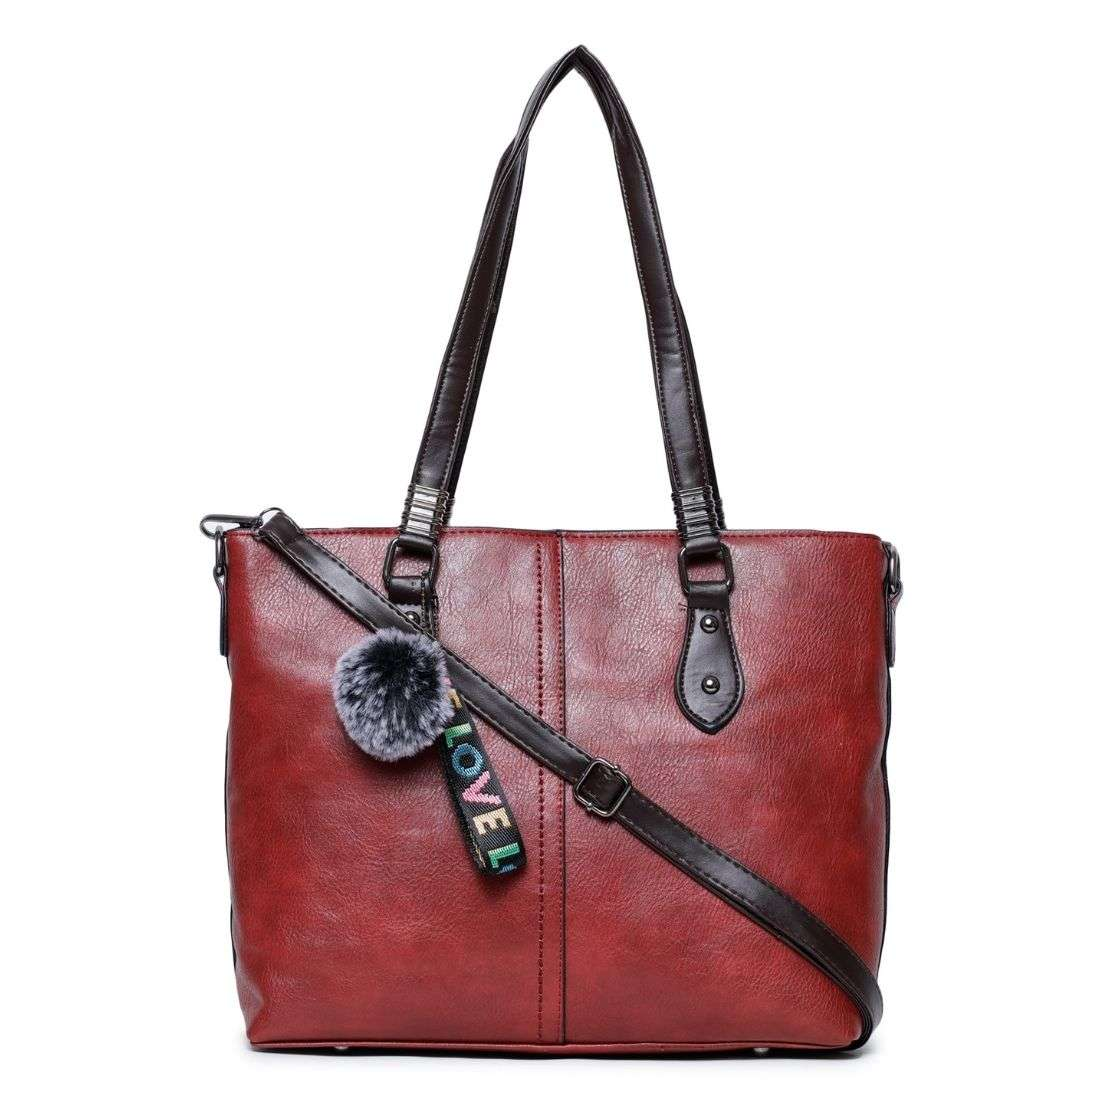 Woman's Sling Bag Red